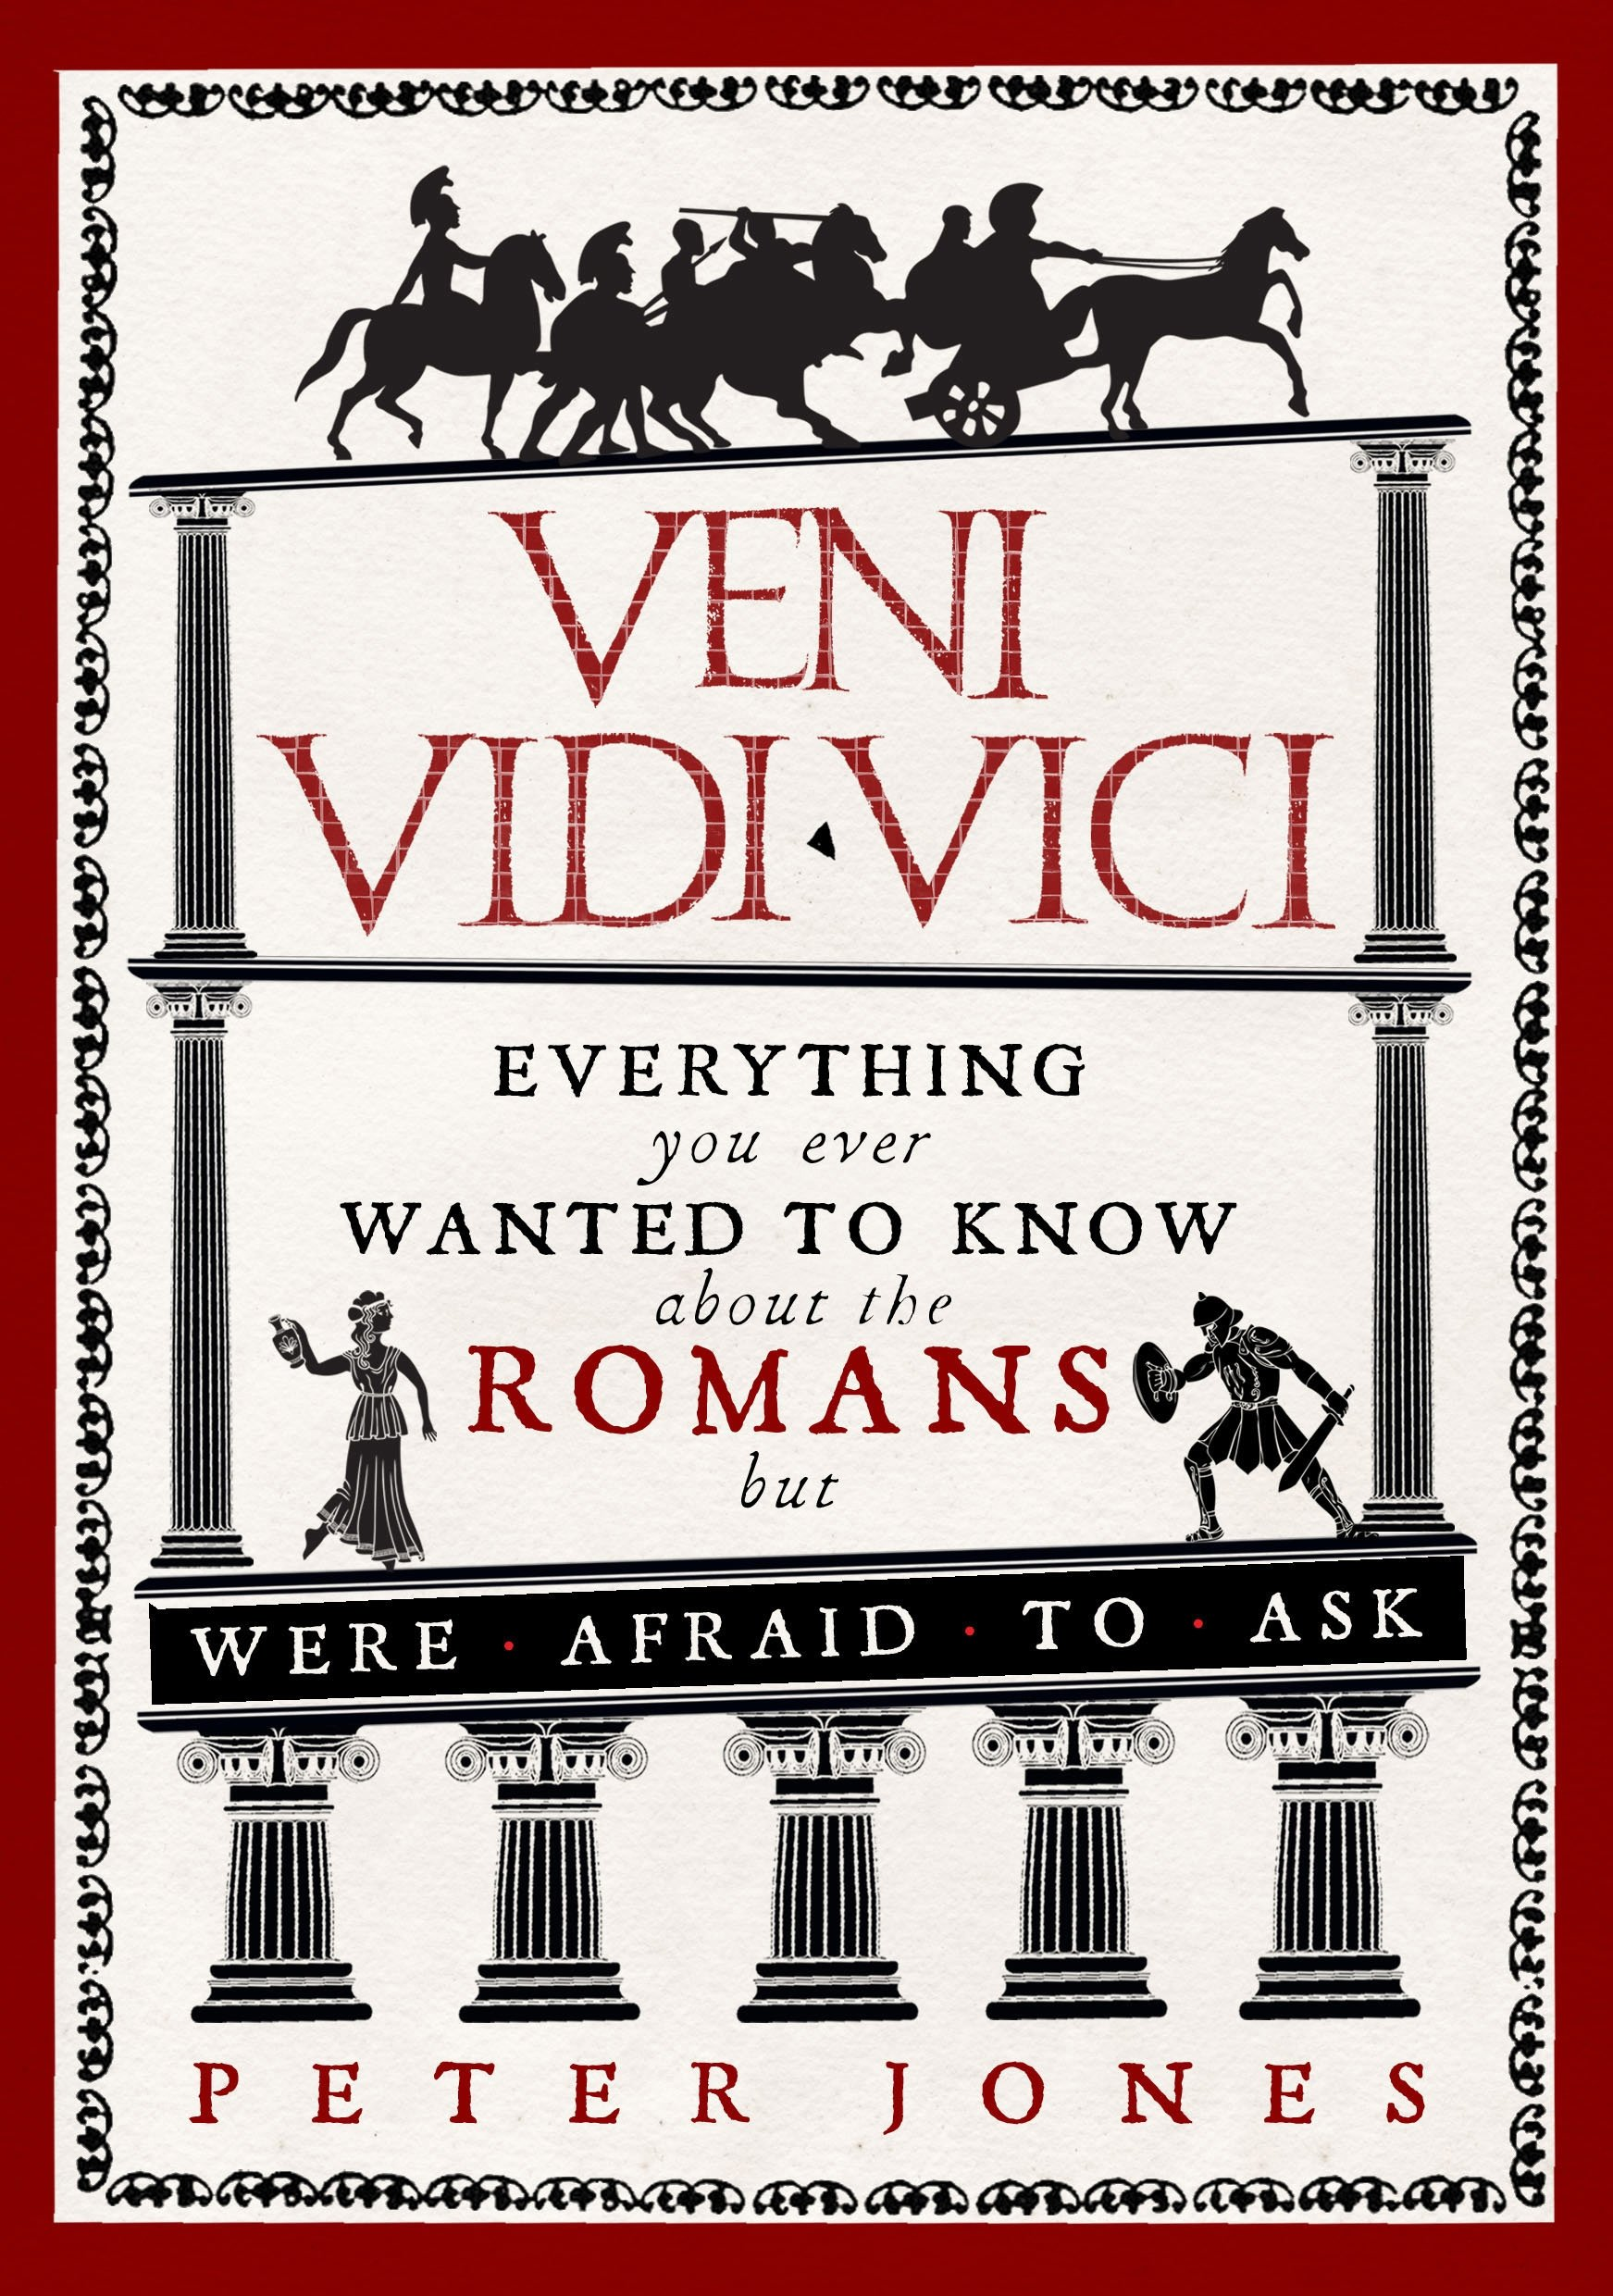 Veni, Vidi, Vici: Everything You Ever Wanted to Know About the Romans But Were Afraid to Ask